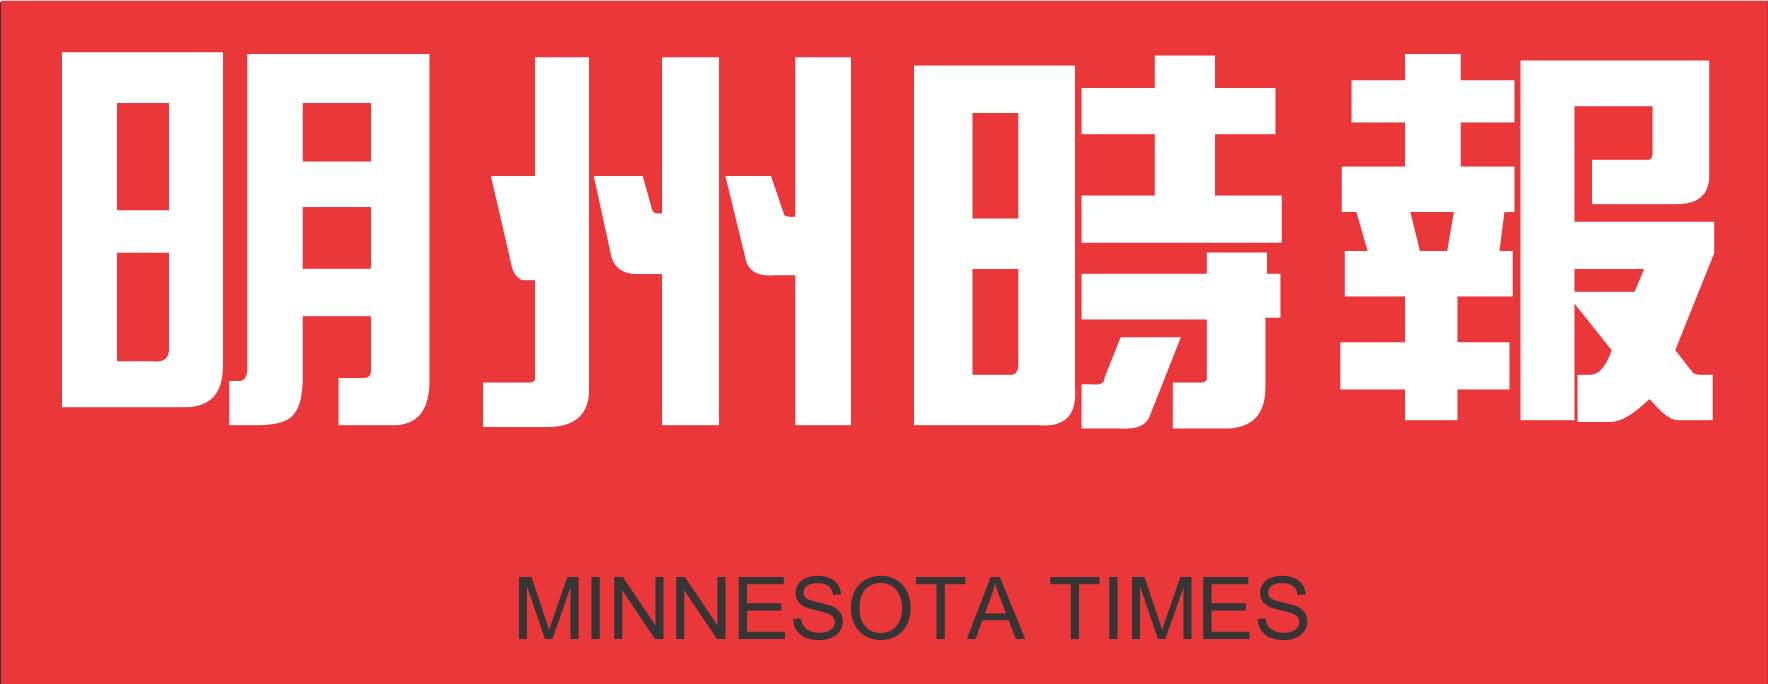 明州时报 ( MINNESOTA TIMES ) header picture